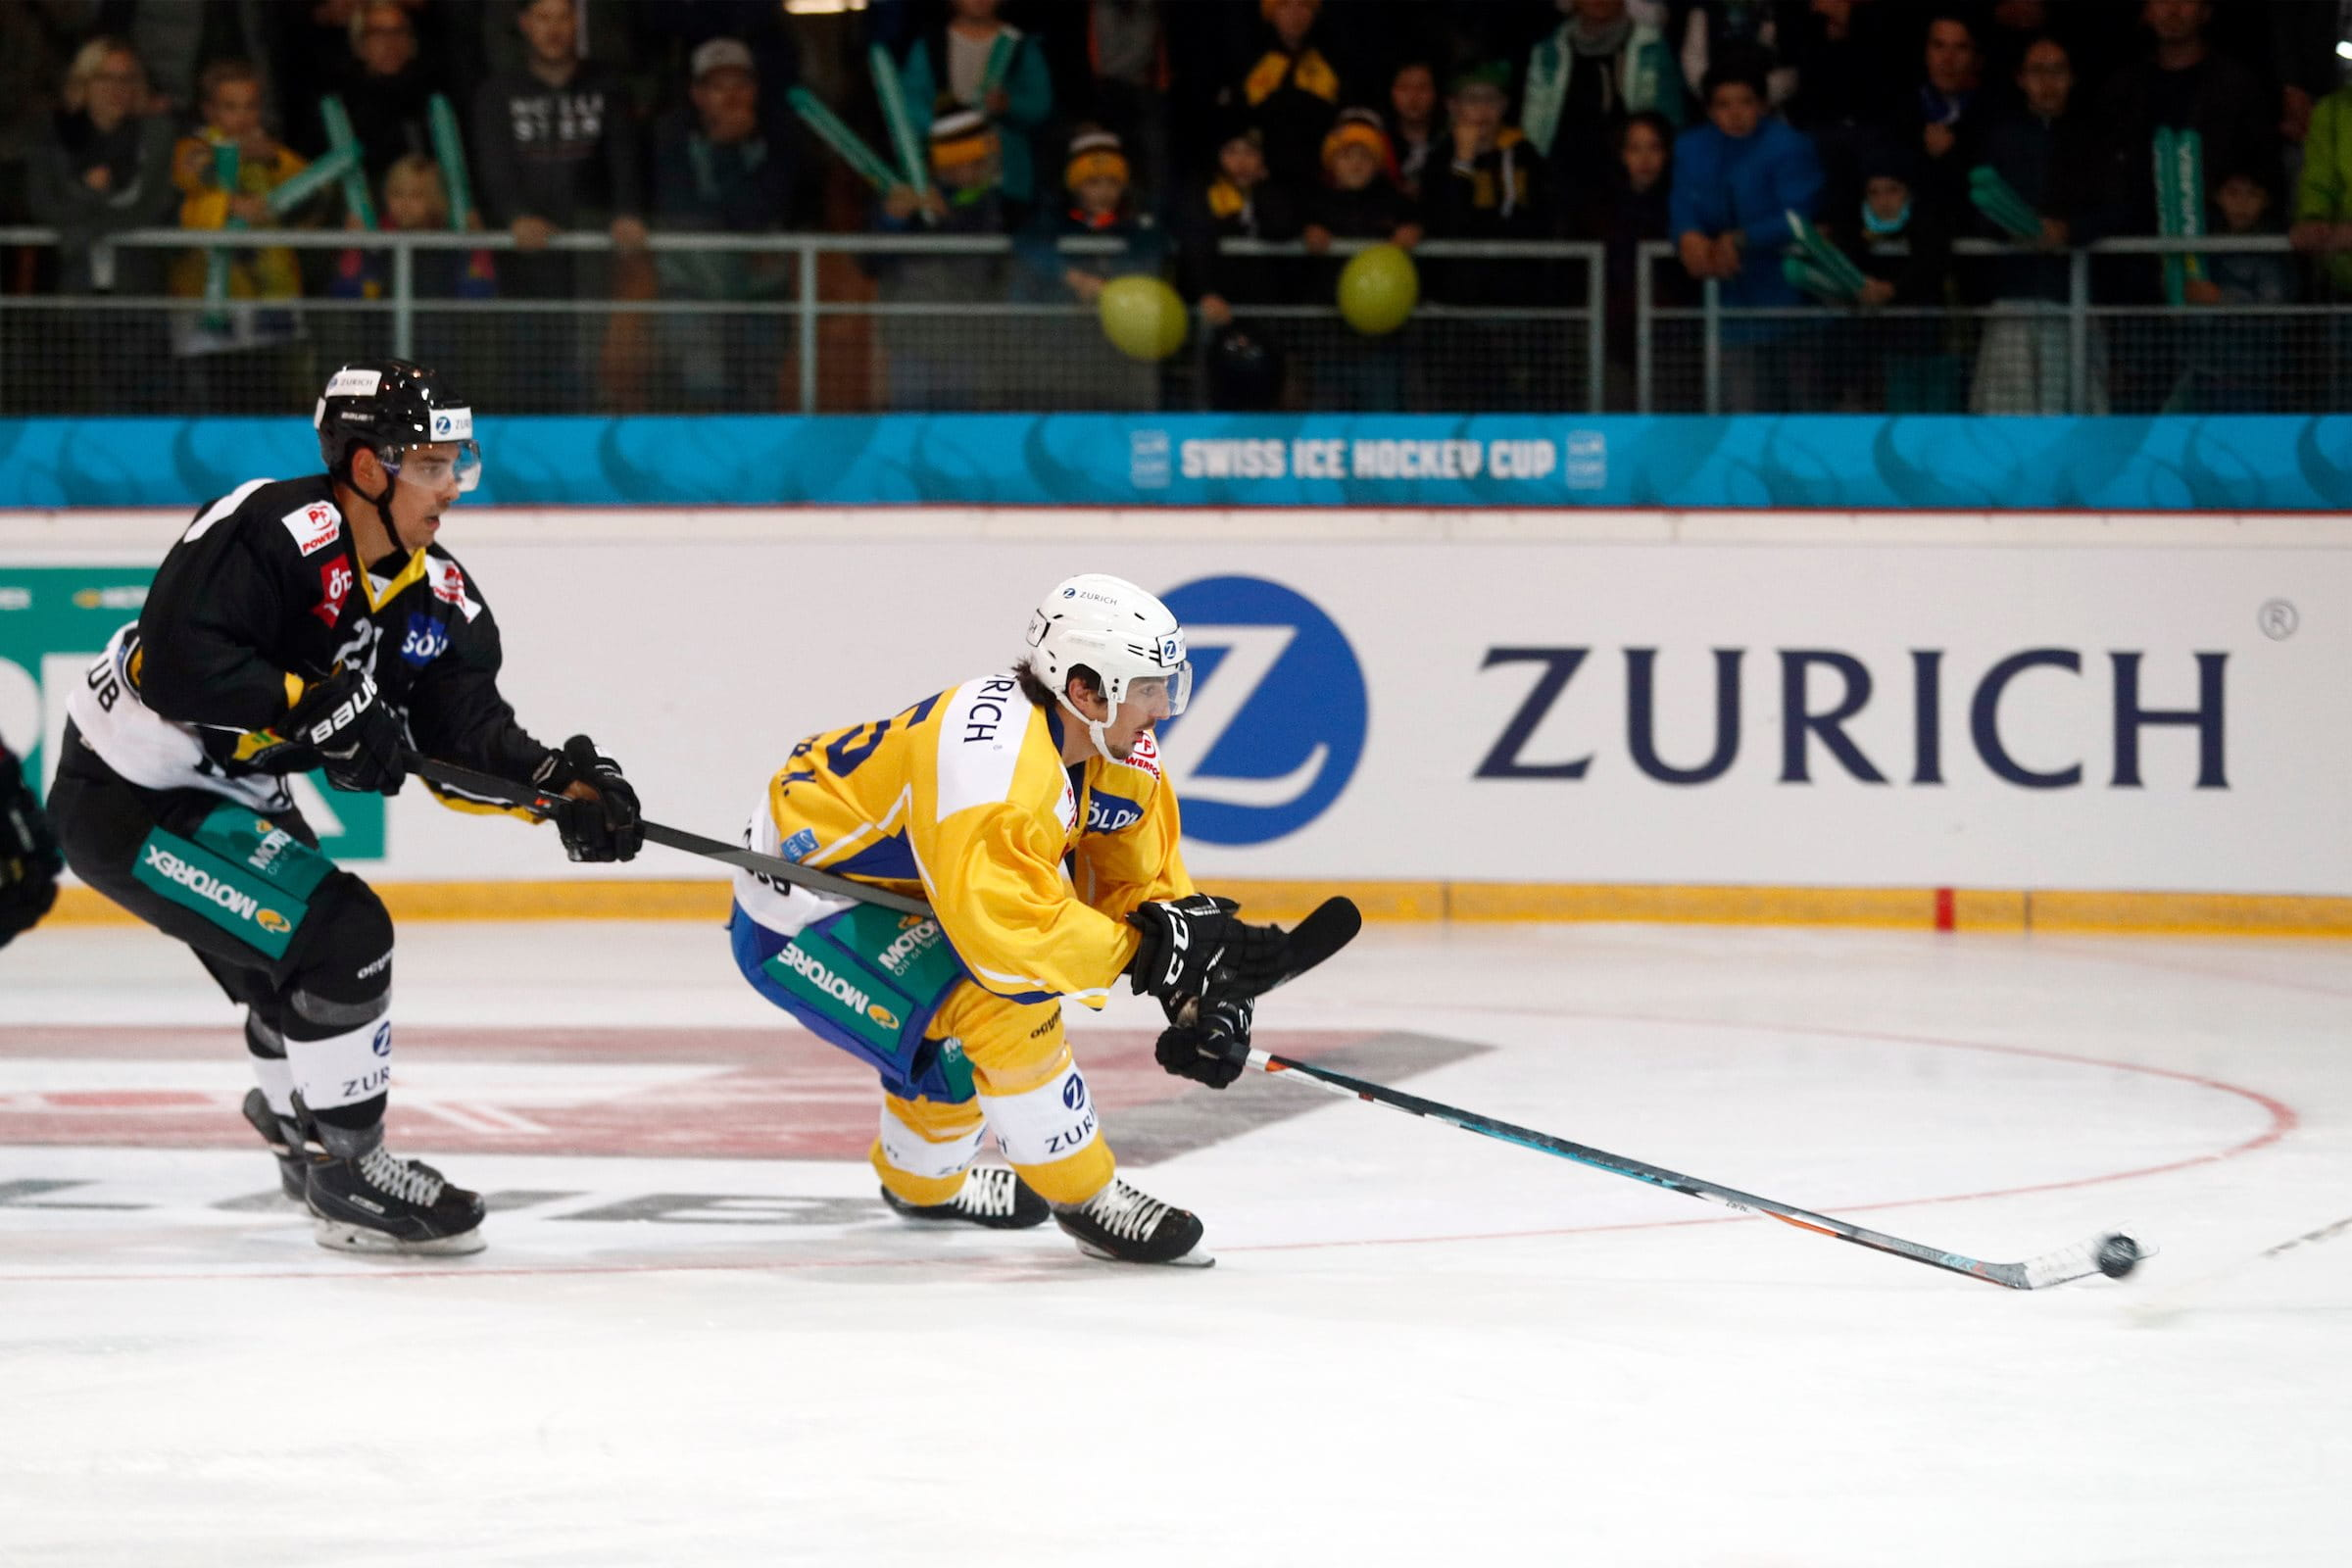 Unser Engagement-SwissIceHockeyCup